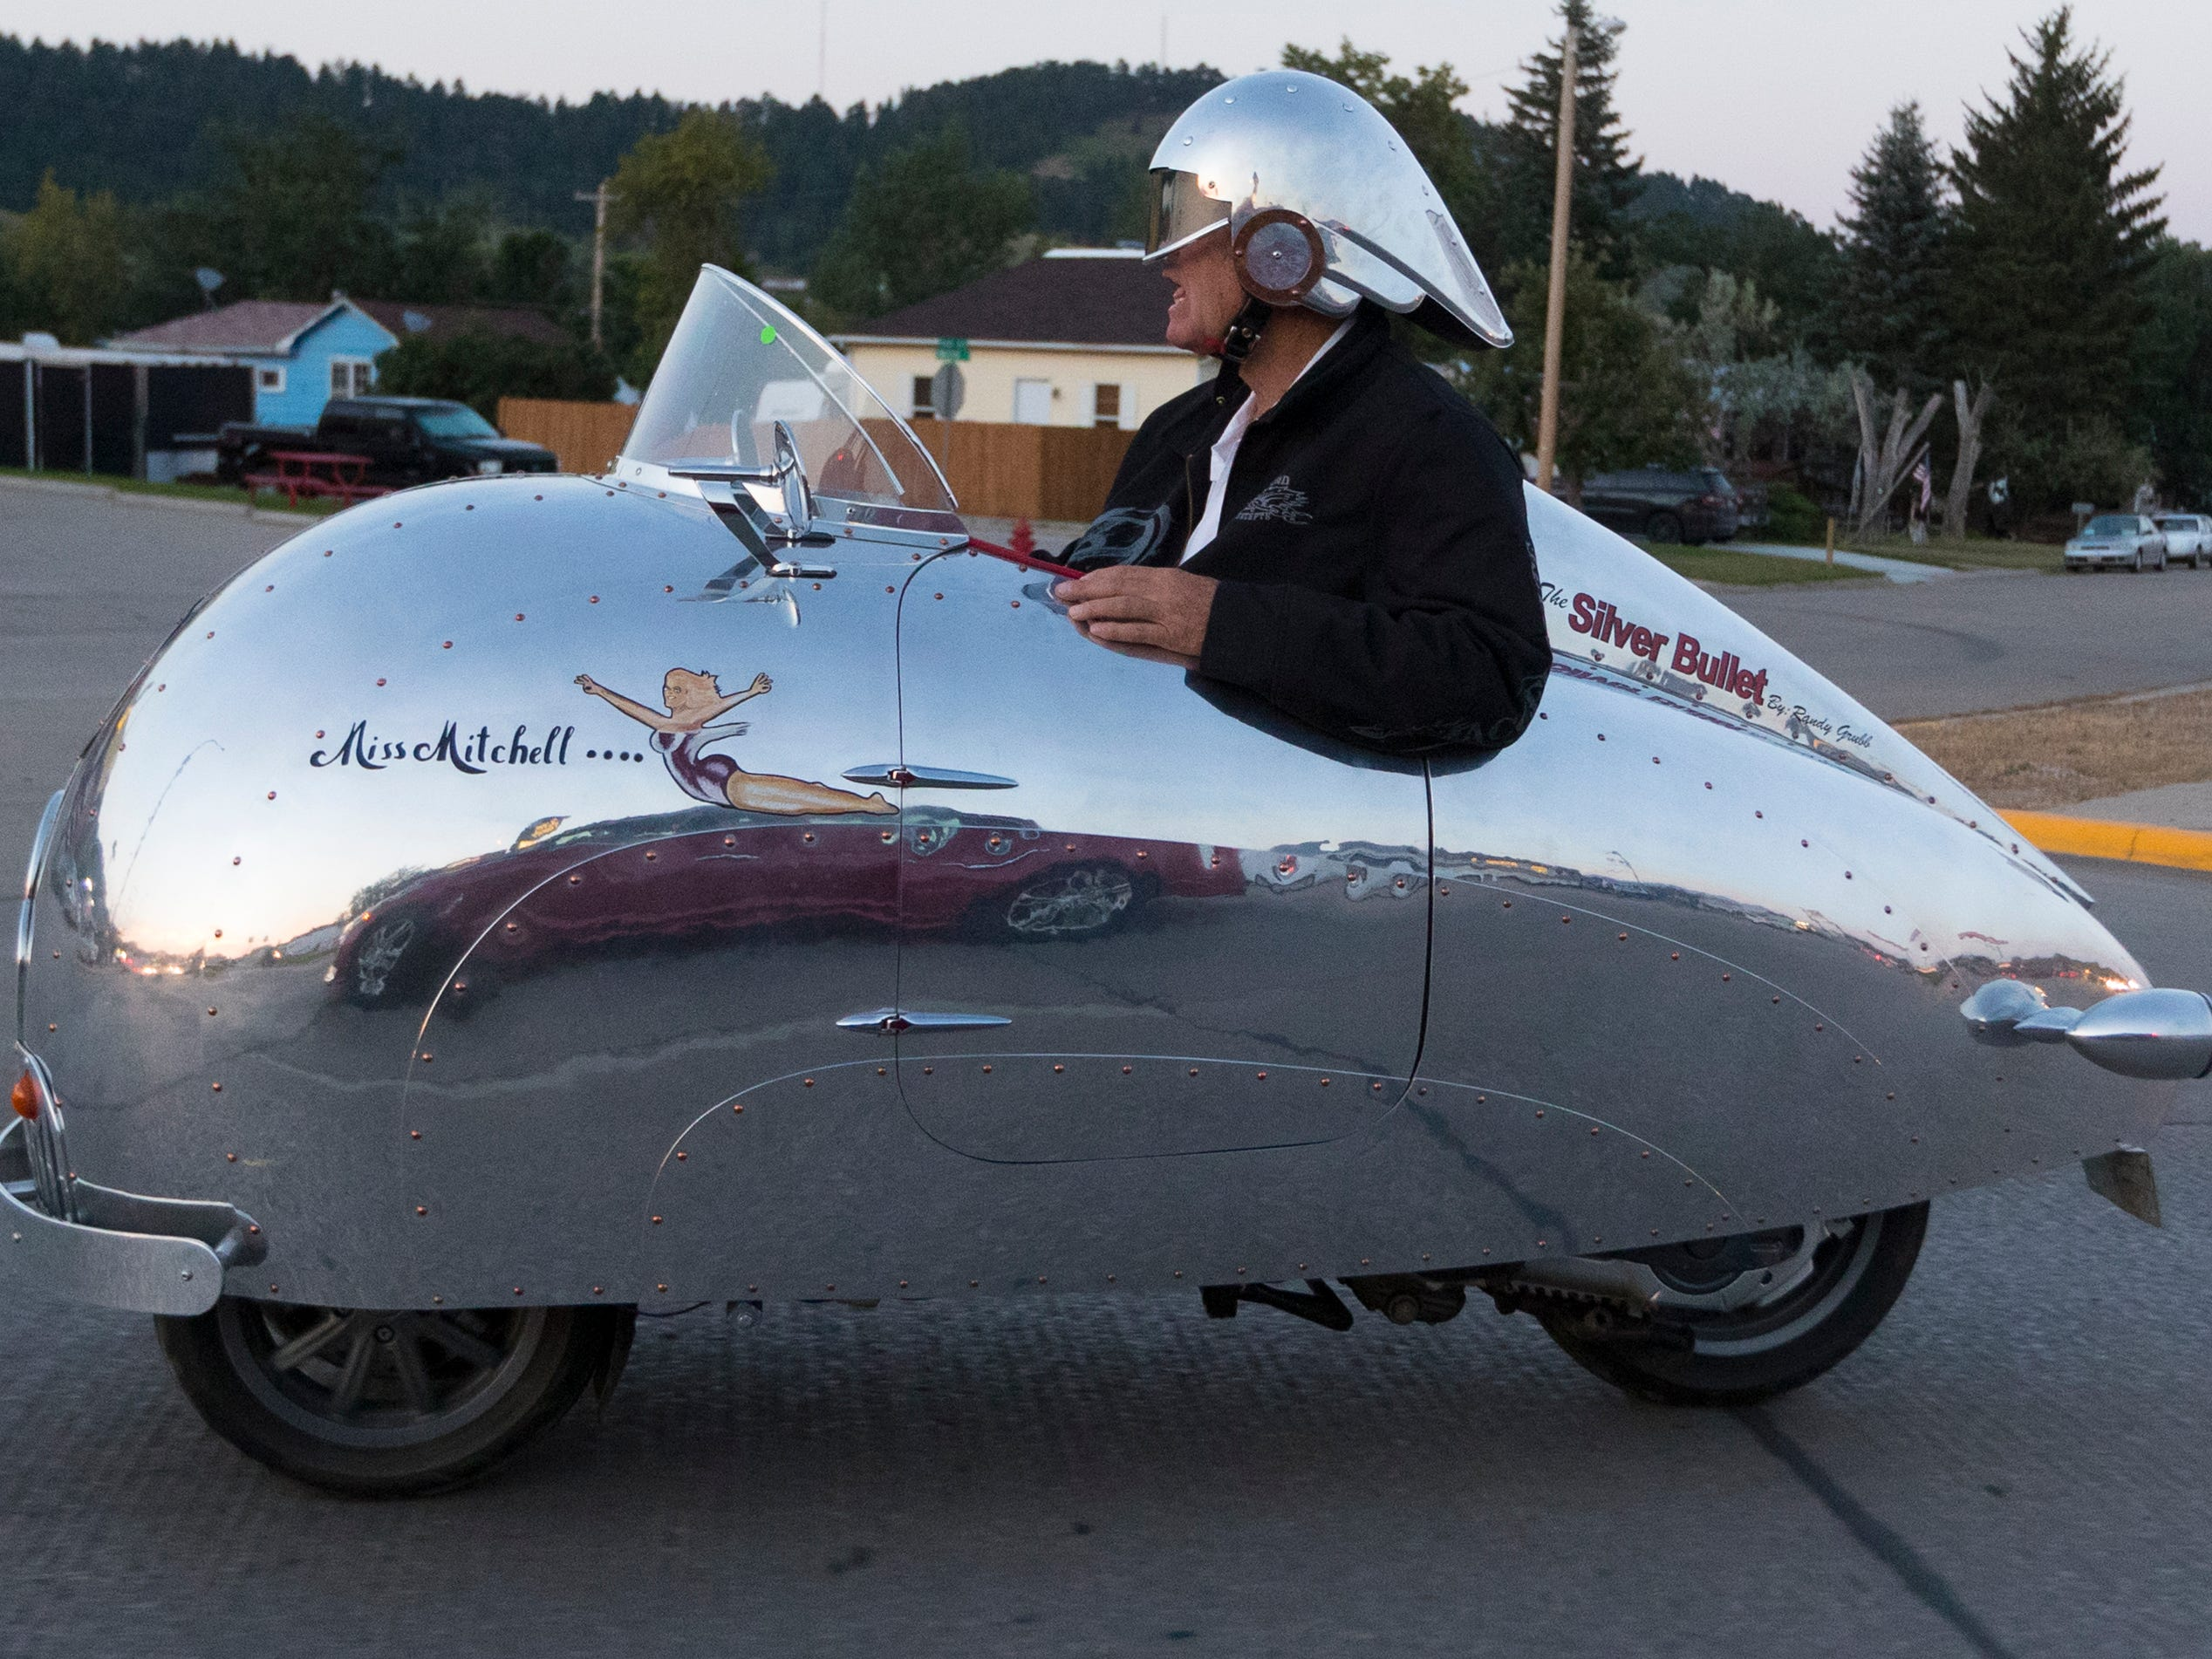 2018: A man rides a streamline motorcycle during the Sturgis Motorcycle Rally.